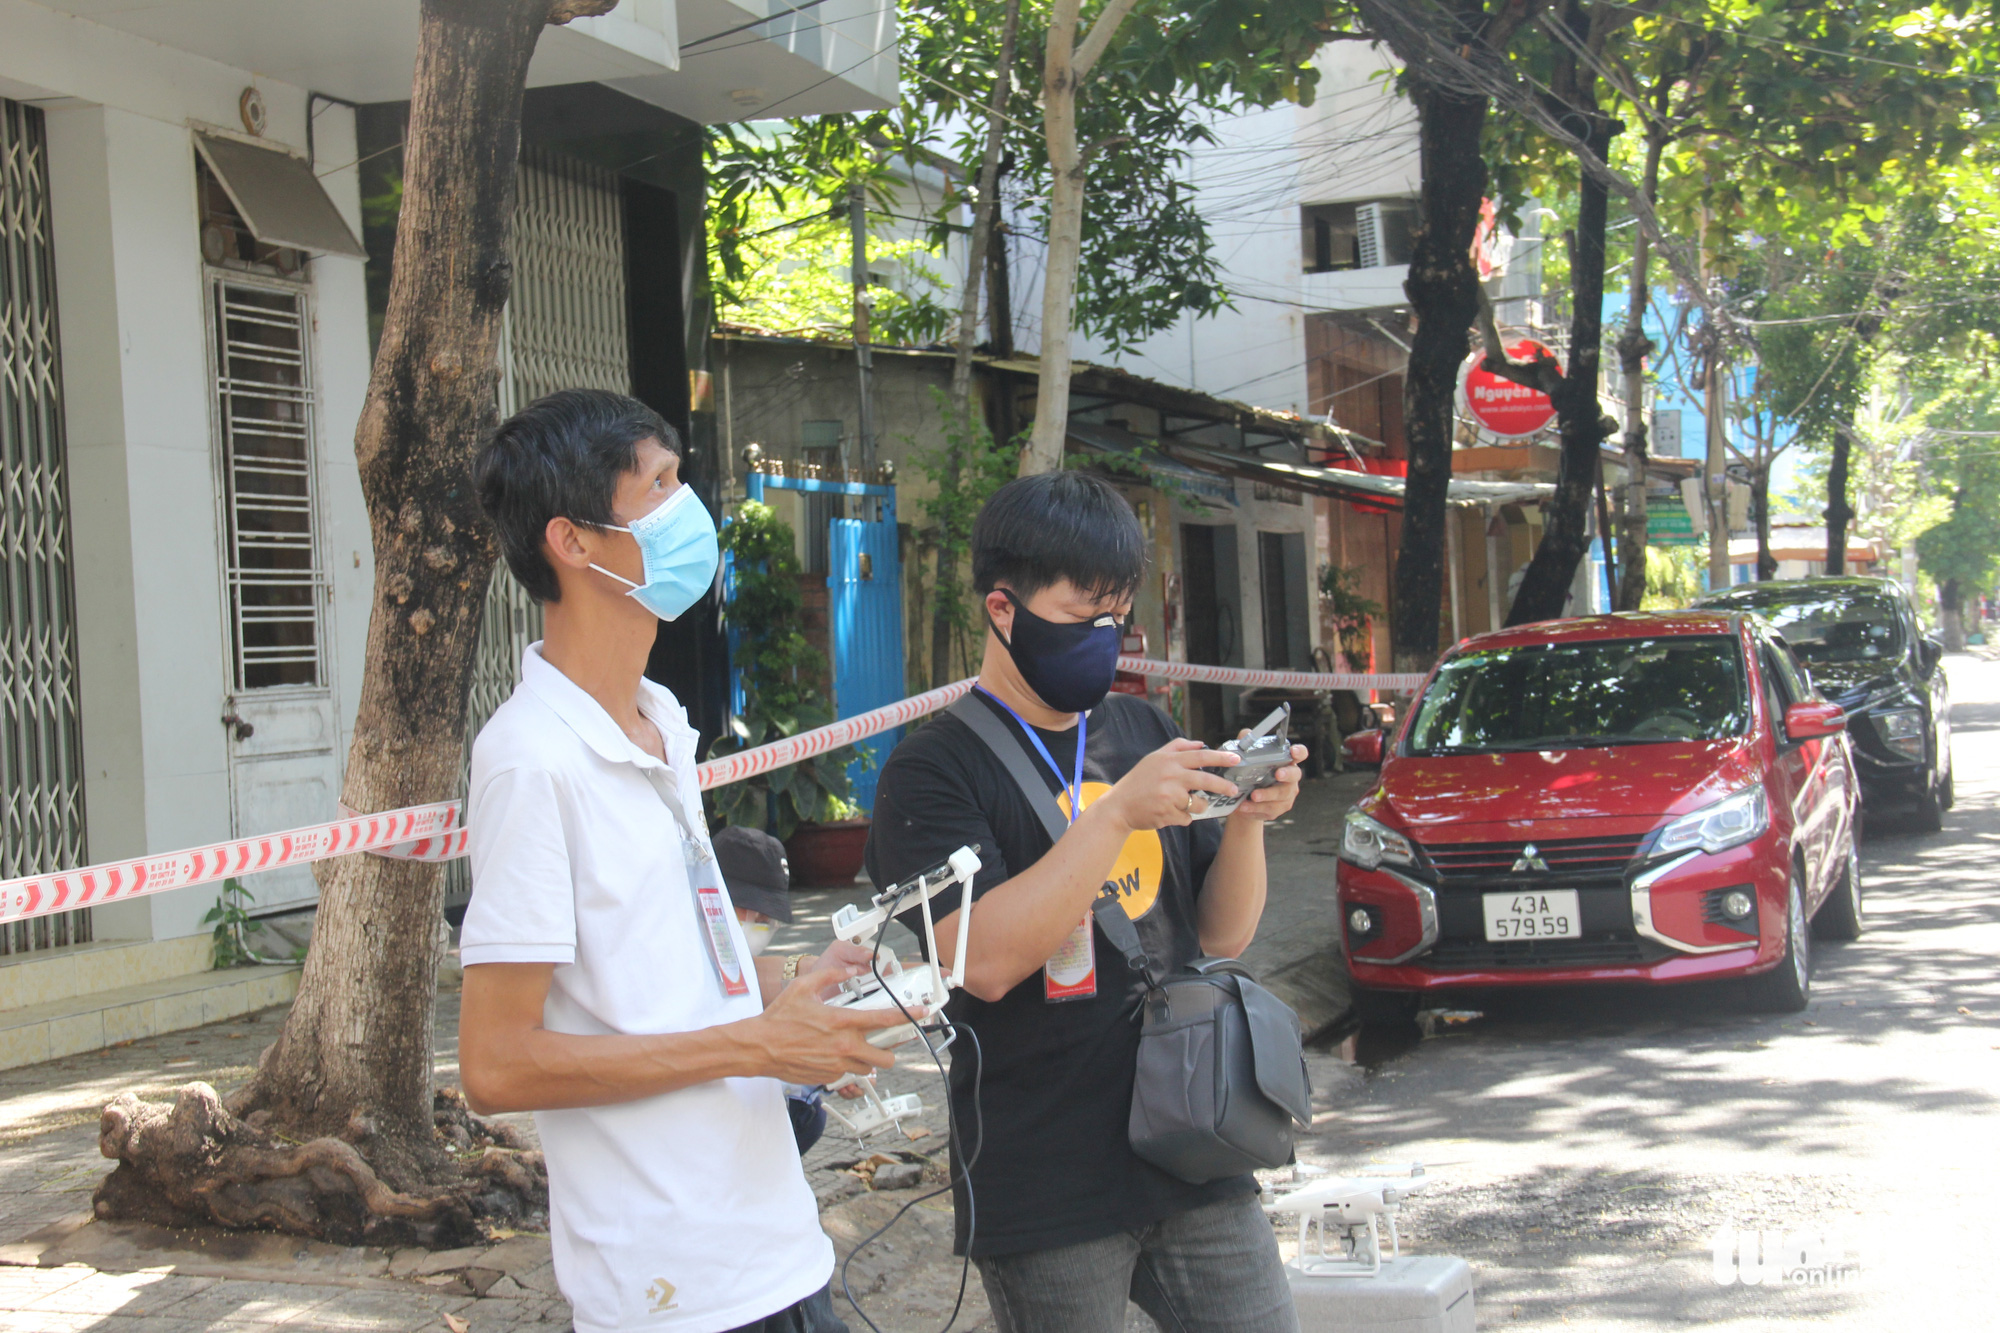 Two men operate camera drones to monitor the situation in an alley in Hai Chau District, Da Nang, August 29, 2021. Photo: Tuoi Tre